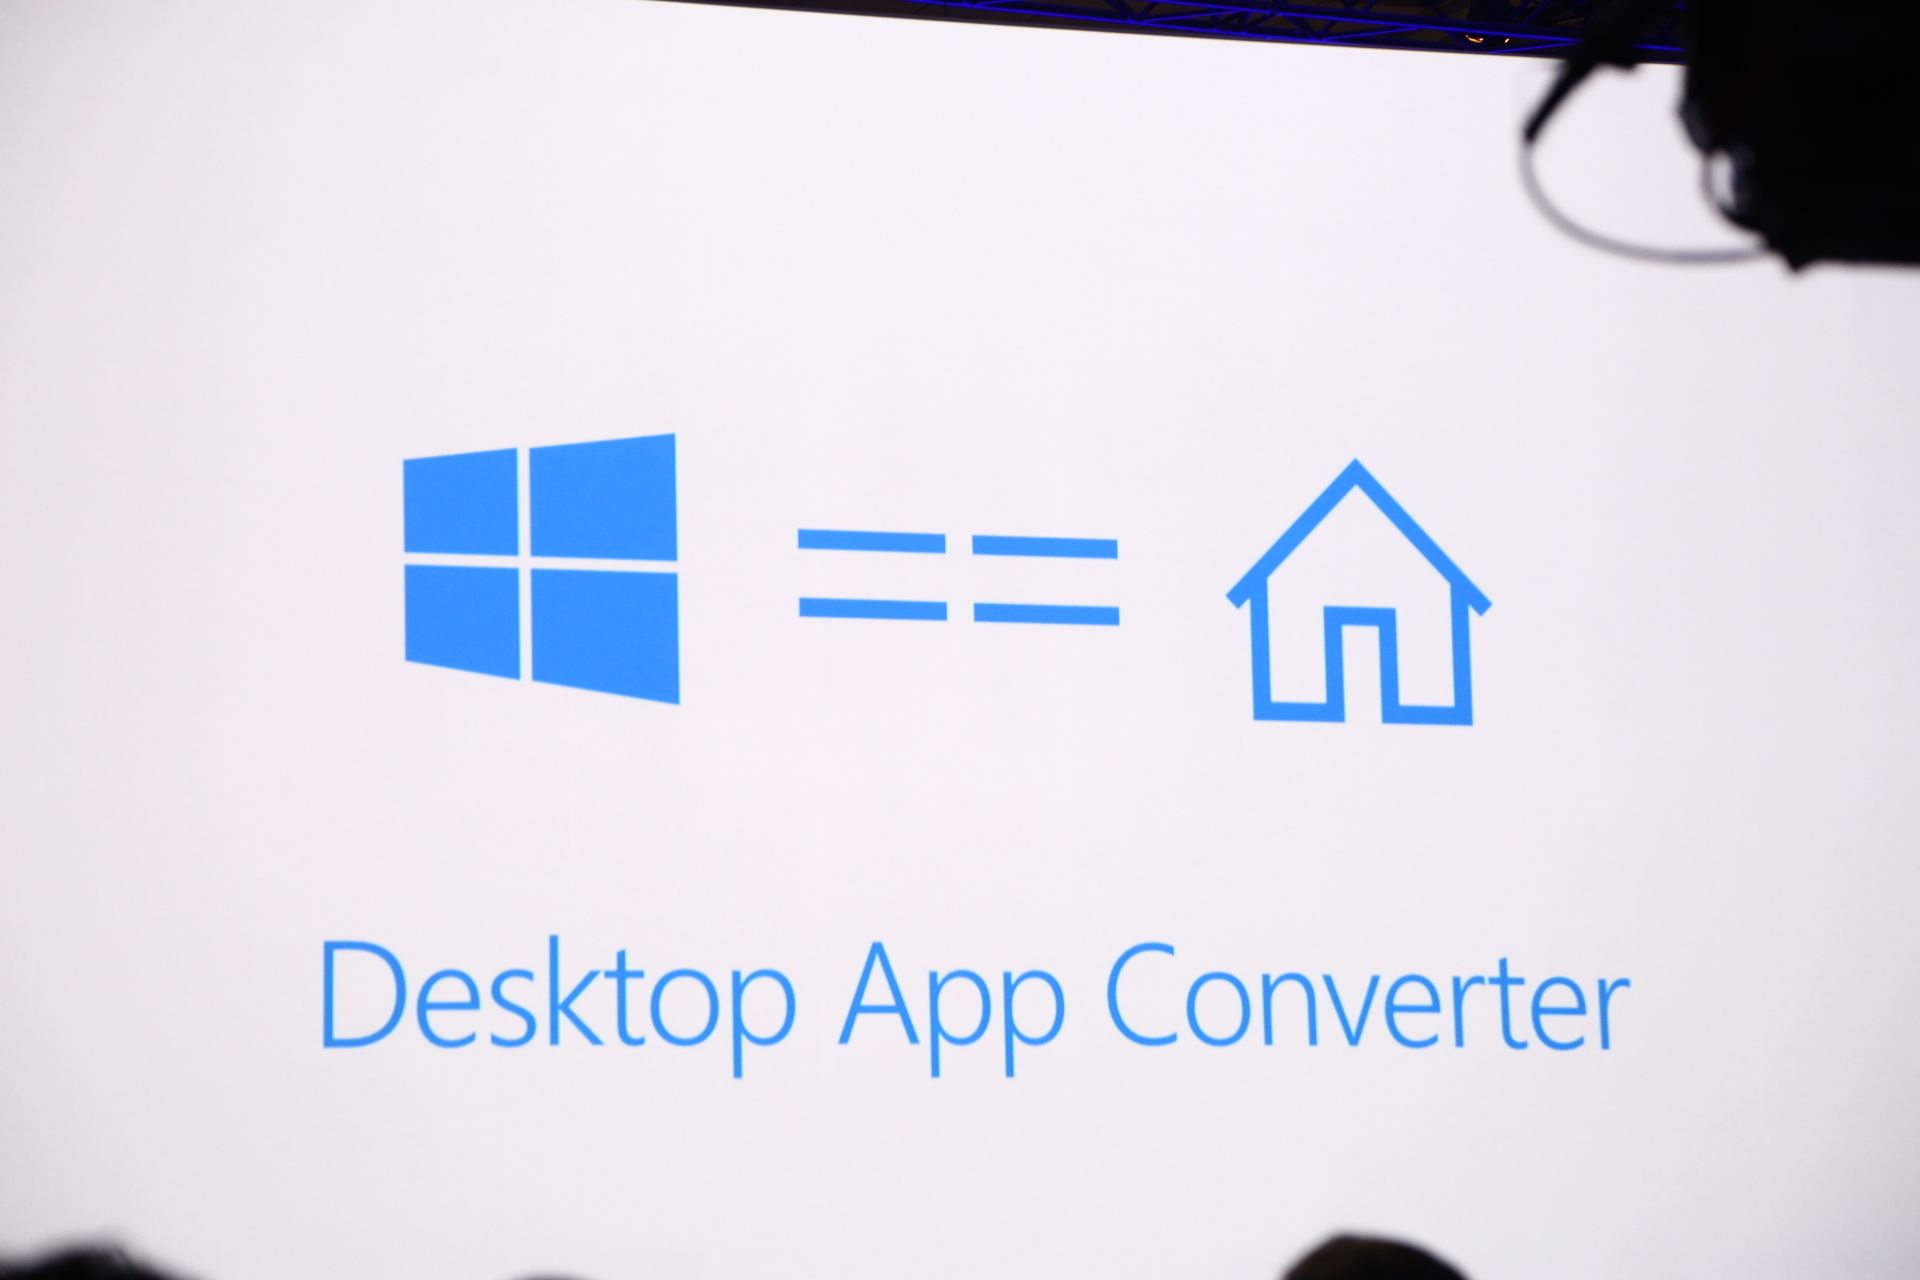 Microsoft introduces the Desktop App Converter for bringing Win32